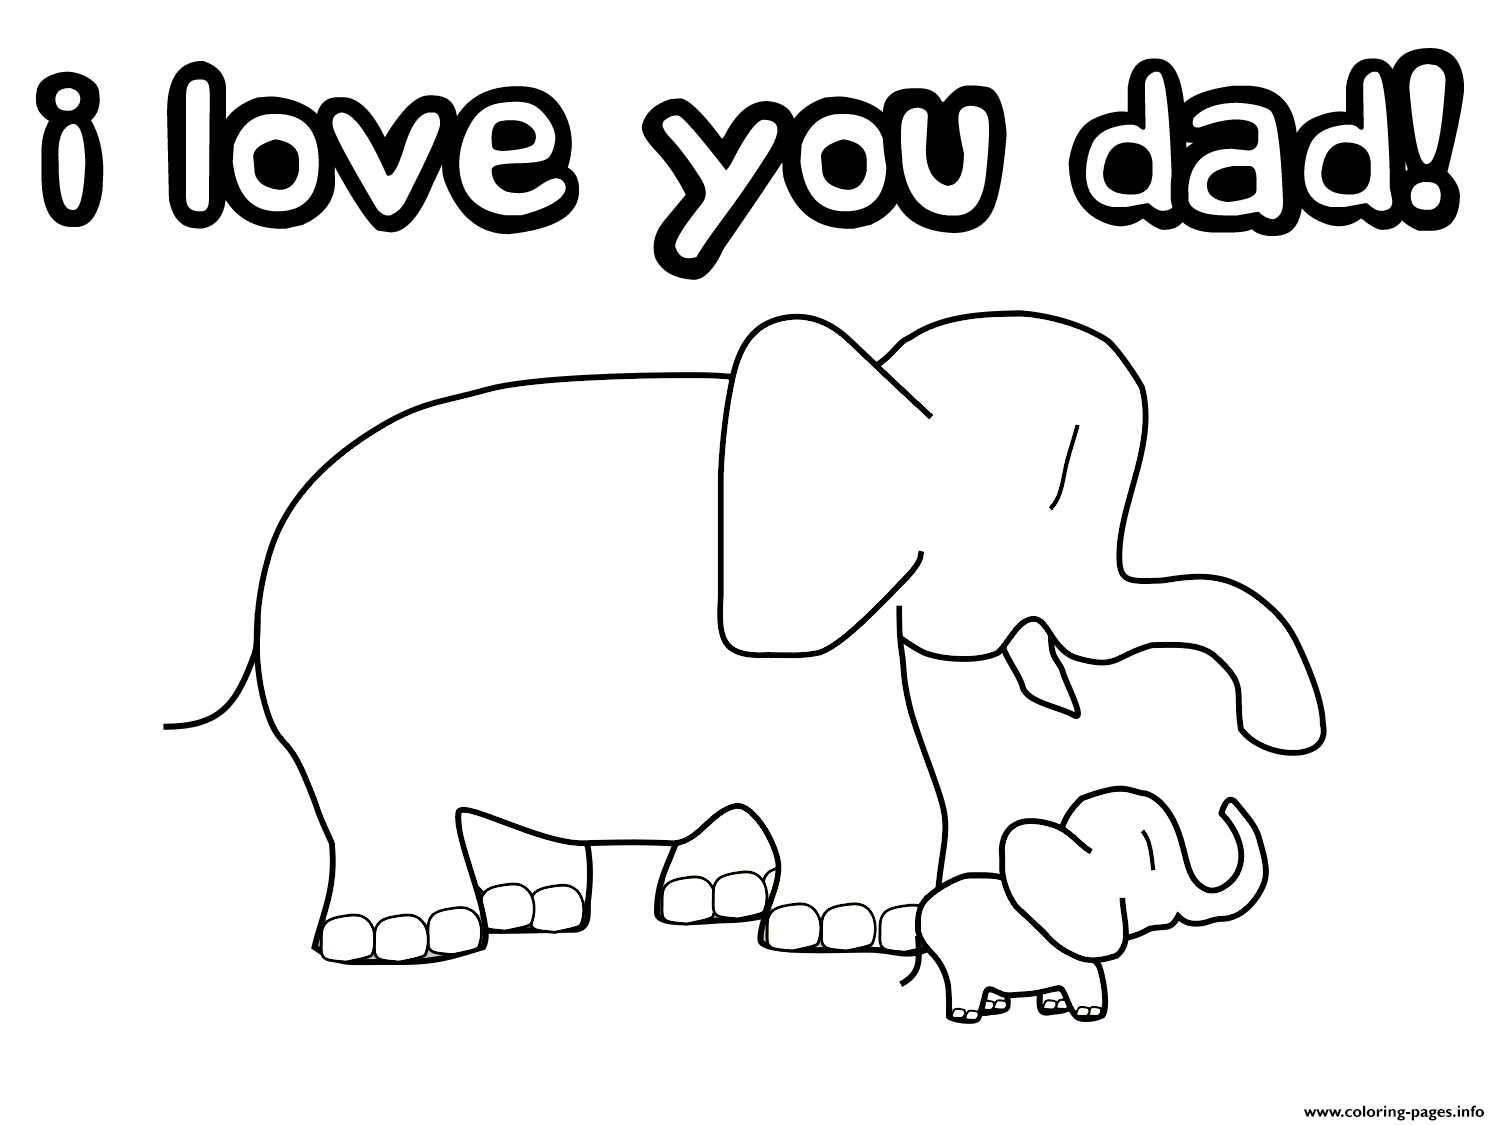 i love you dad coloring pages i love you dad coloring pages getcoloringpagescom love i coloring pages you dad